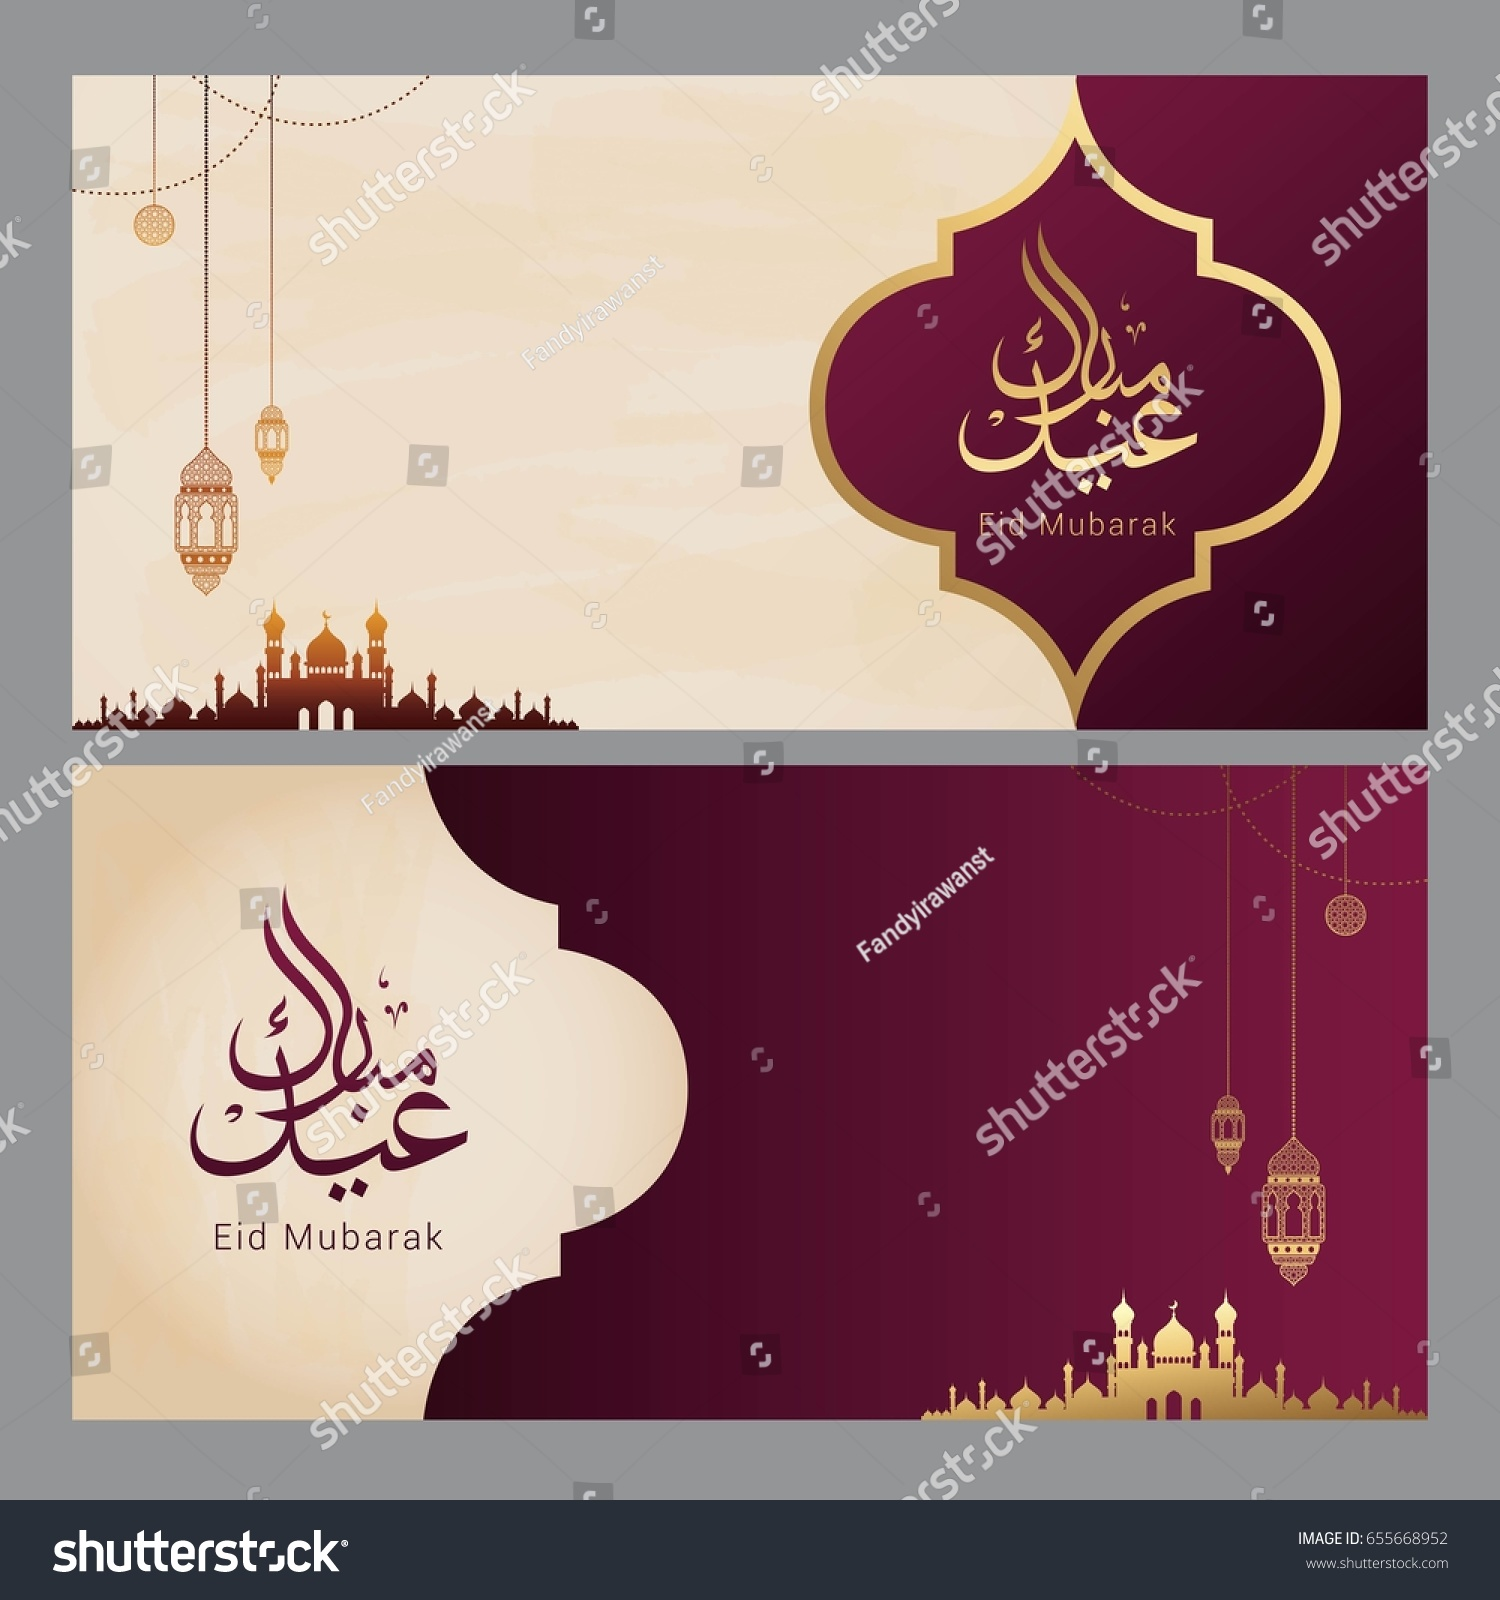 eid mubarak design background vector illustration stock vector royalty free 655668952 https www shutterstock com image vector eid mubarak design background vector illustration 655668952